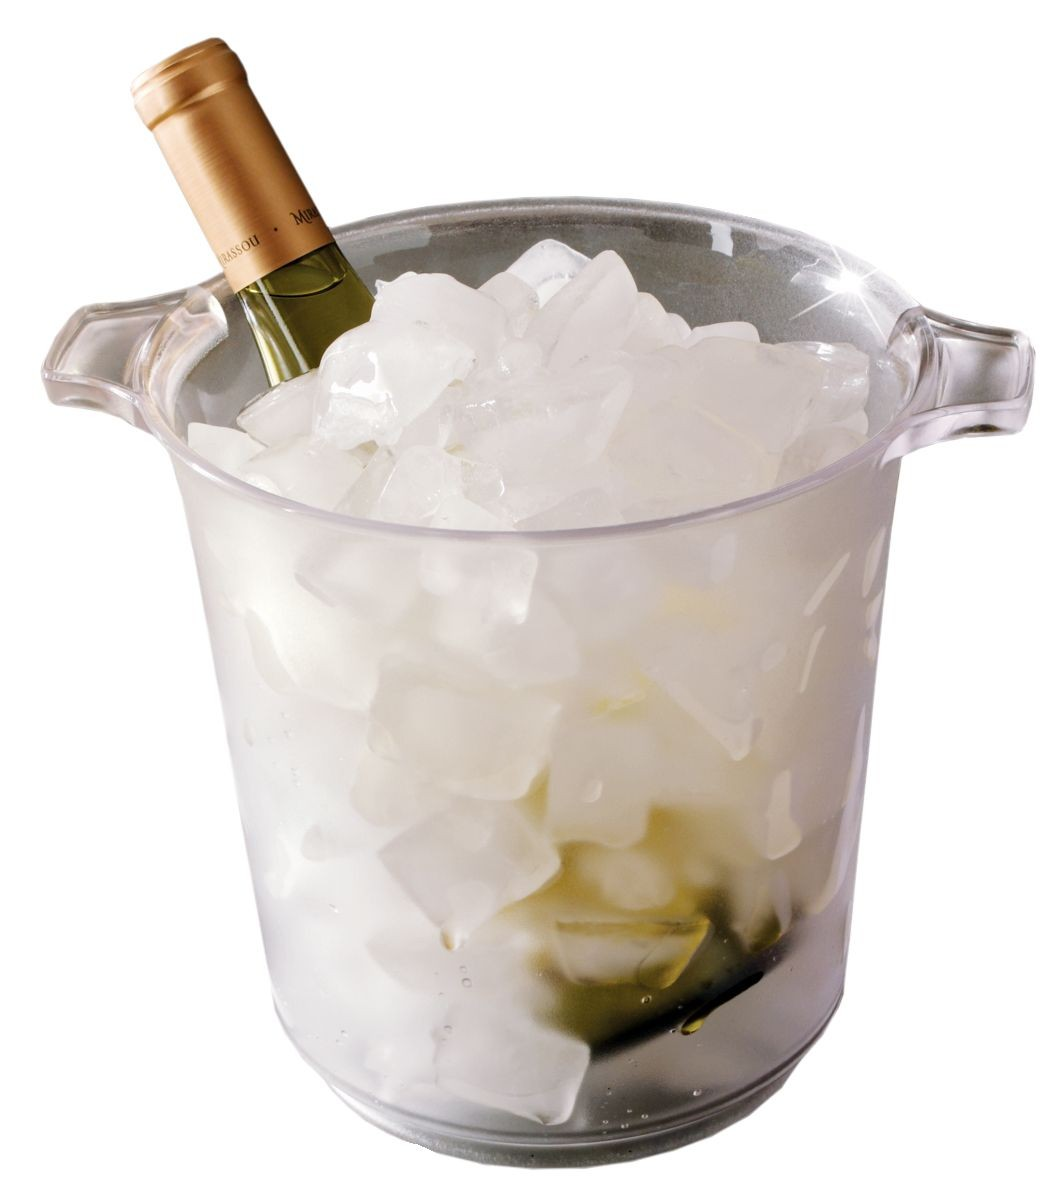 Emi Yoshi EMI-IB1 Clear Gallon Ice Bucket - 1/2 doz